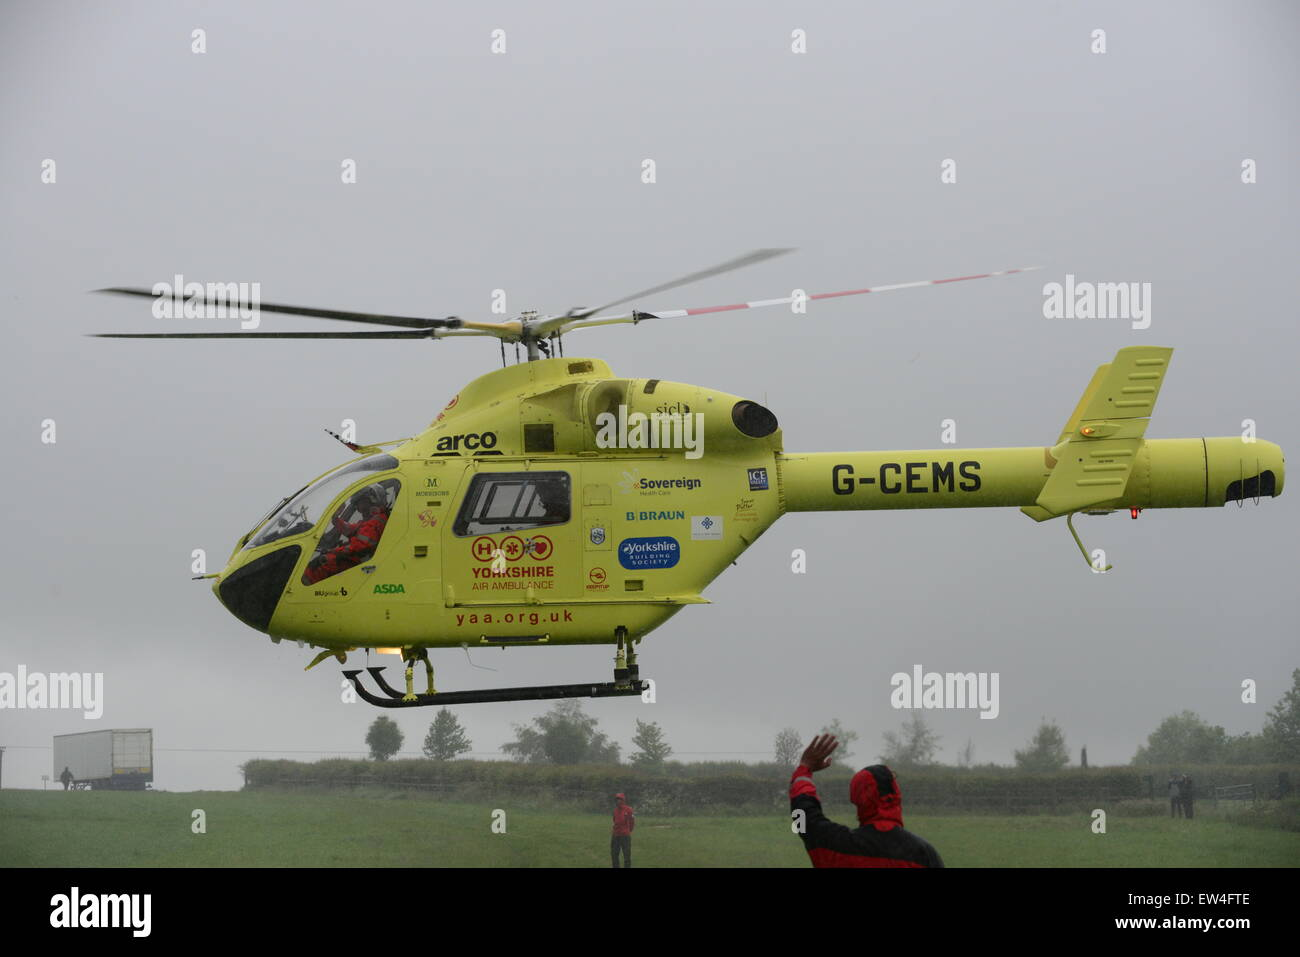 Yorkshire Air Ambulance taking off in rainy weather, Barnsley, South Yorkshire, UK. Picture: Scott Bairstow/Alamy - Stock Image